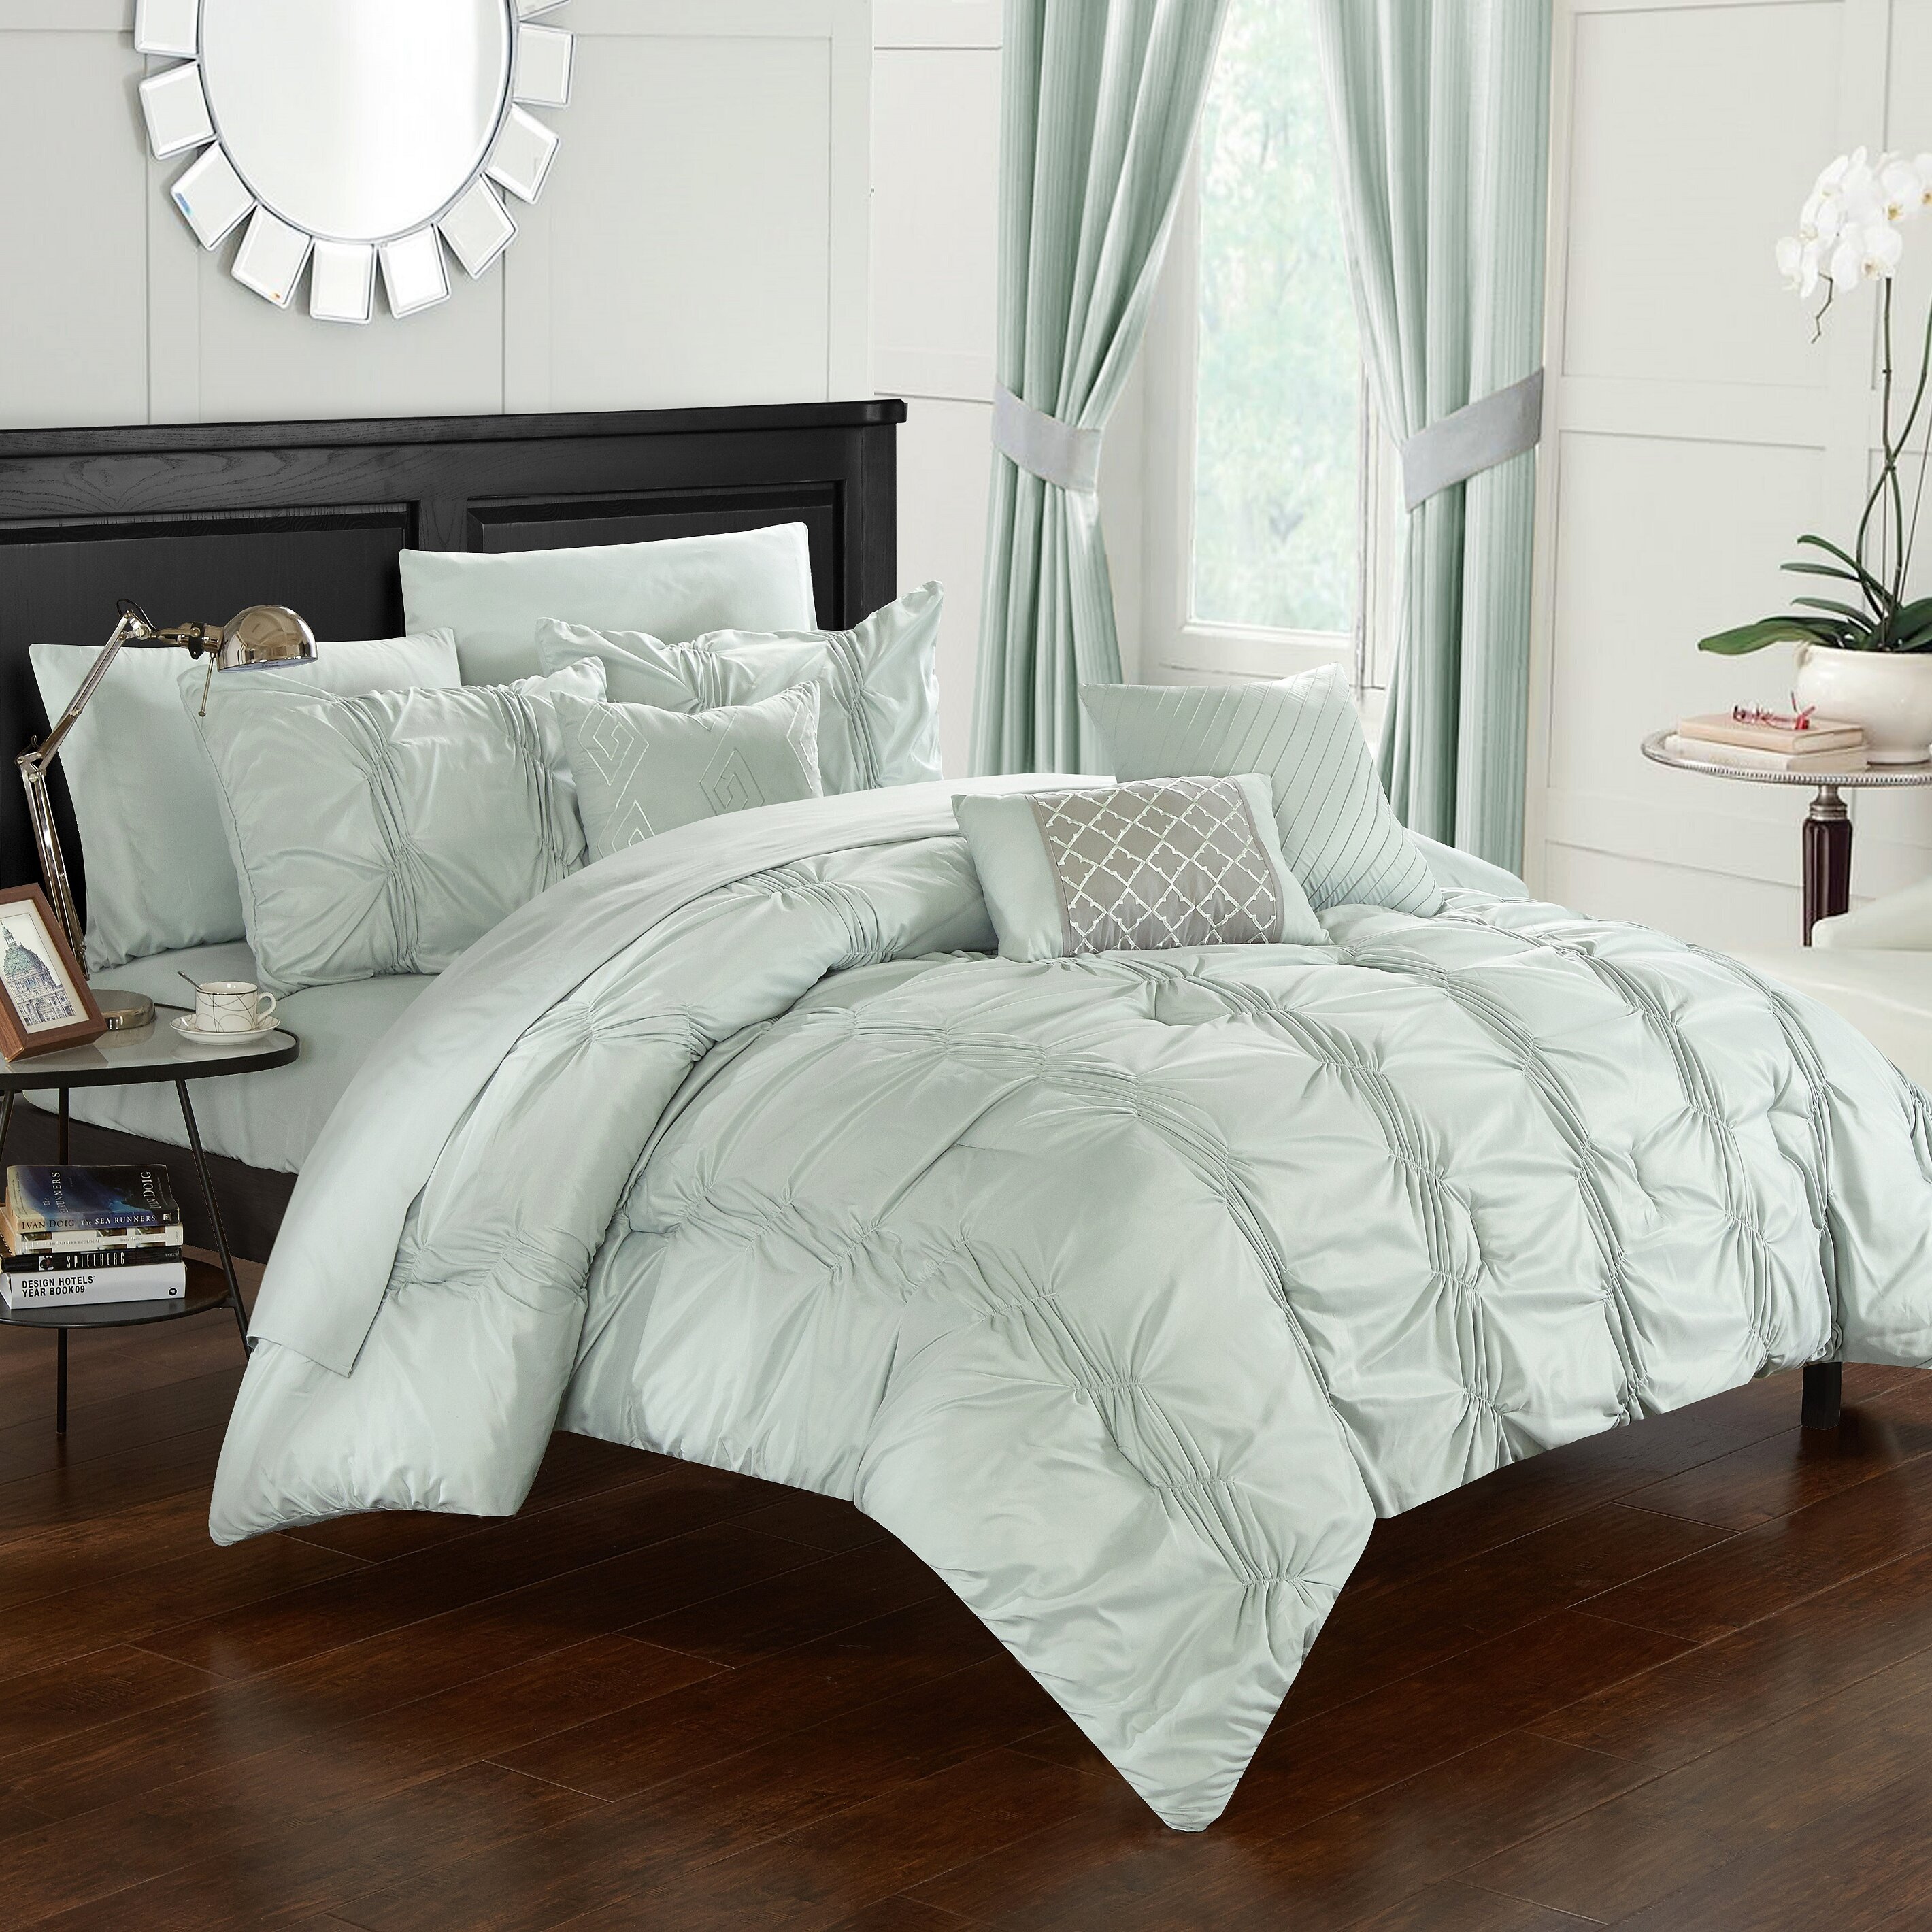 Best Pictures Of Country Chic Comforter Sets - Best Home Plans and ...